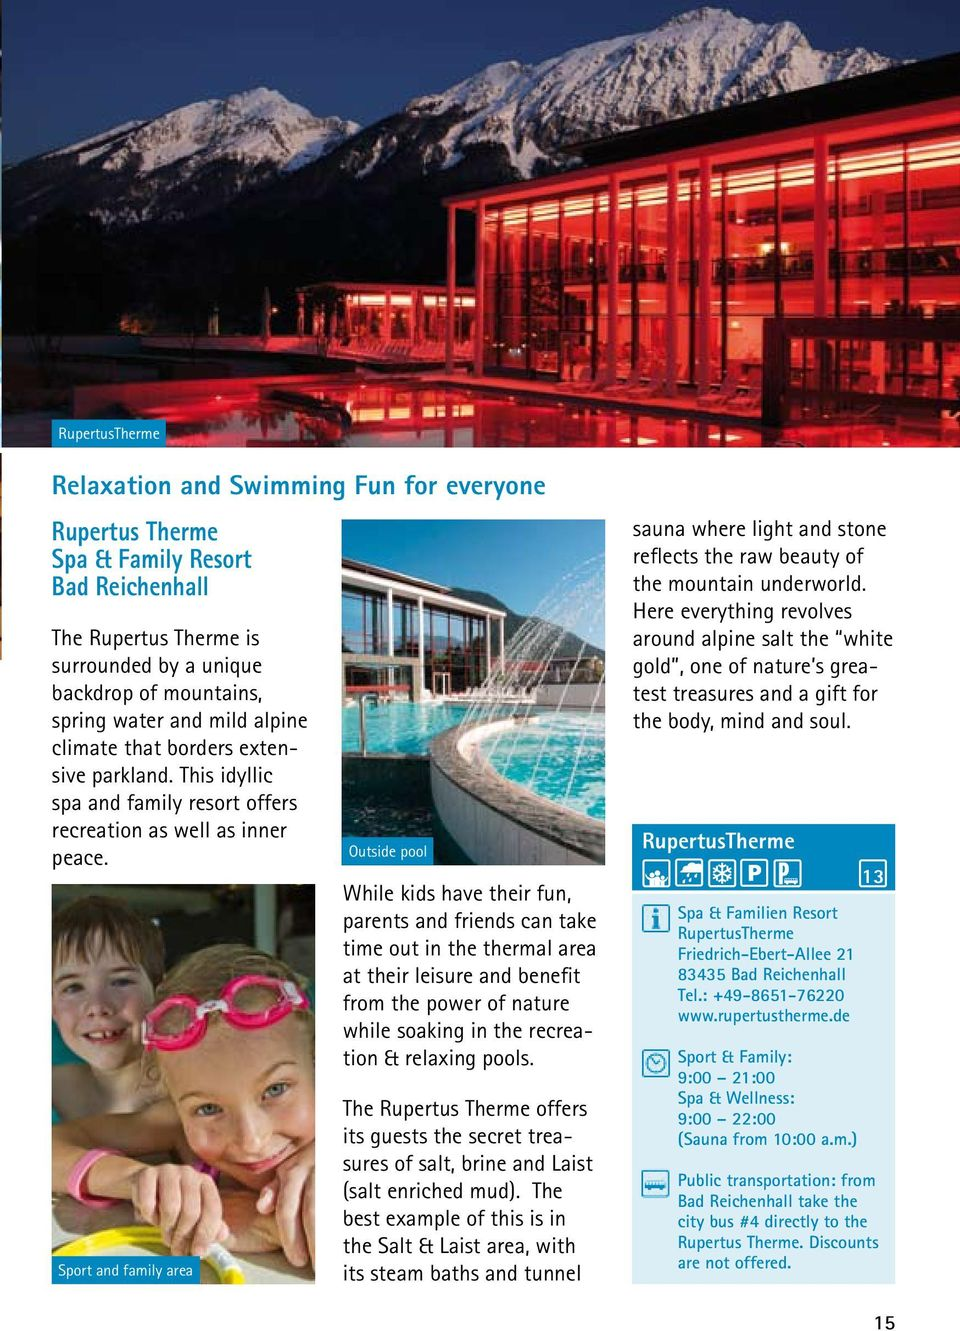 Sport and family area Outside pool While kids have their fun, parents and friends can take time out in the thermal area at their leisure and benefit from the power of nature while soaking in the